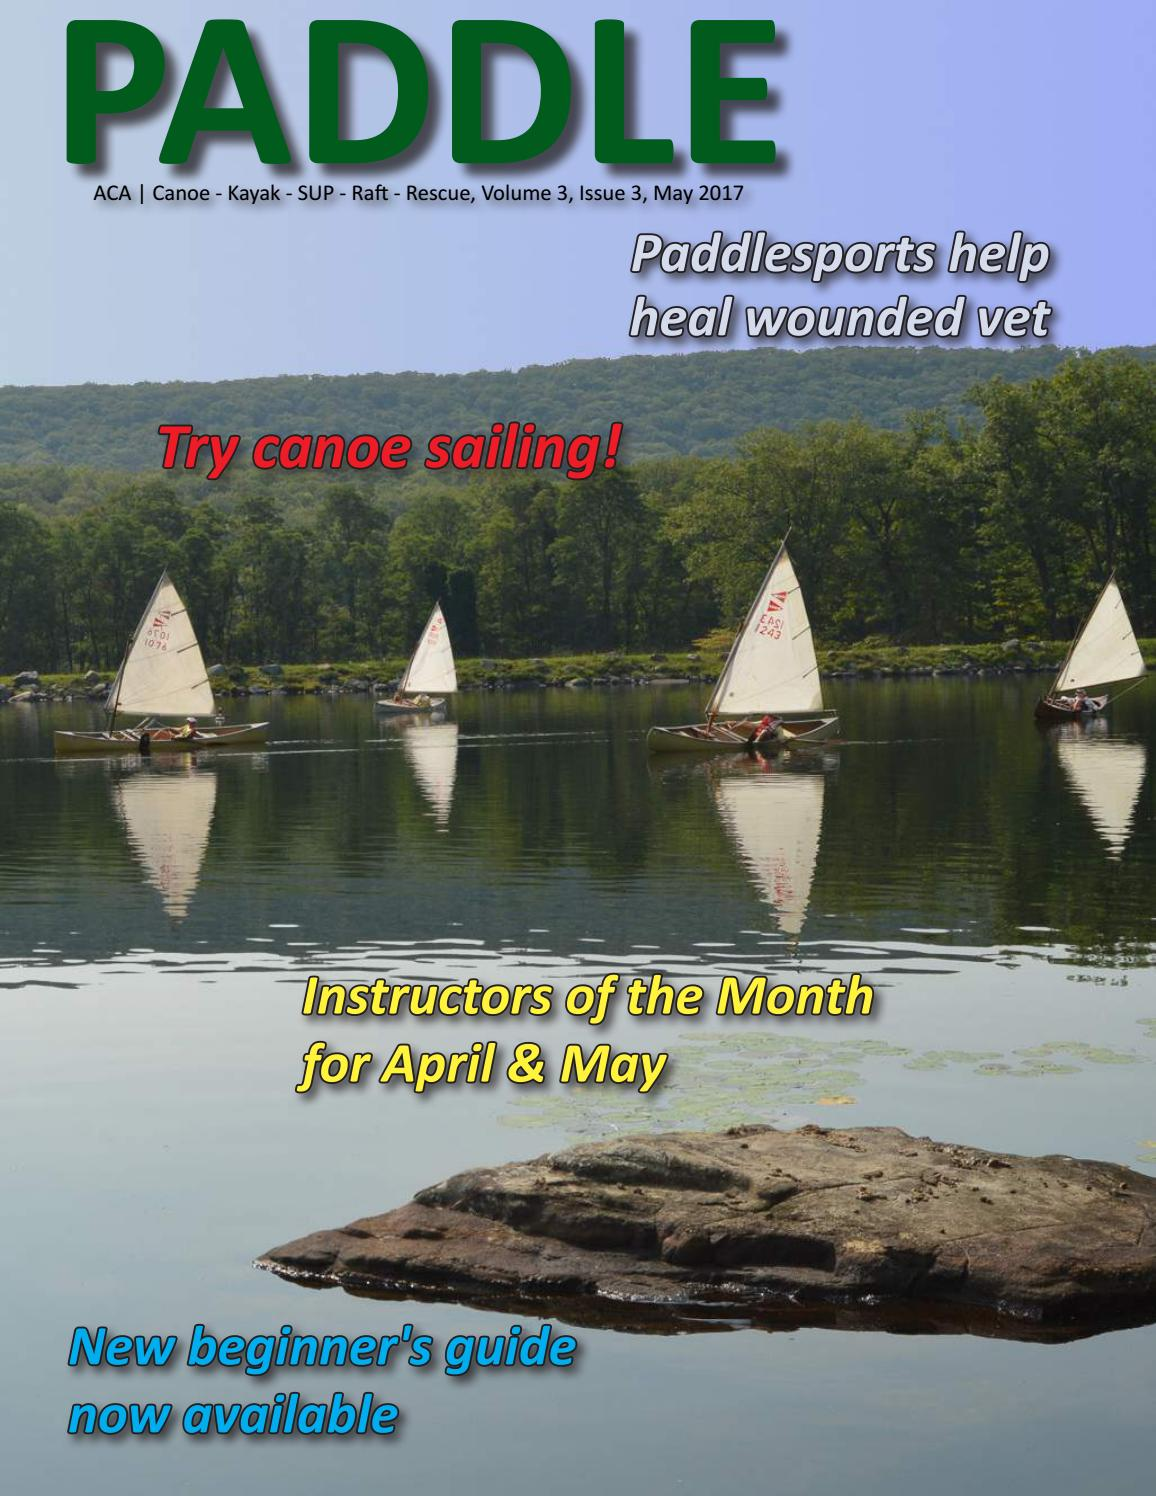 Paddle May 2017 Volume 3 Issue 3 By Aca Canoe Kayak Sup Raft Rescue Issuu